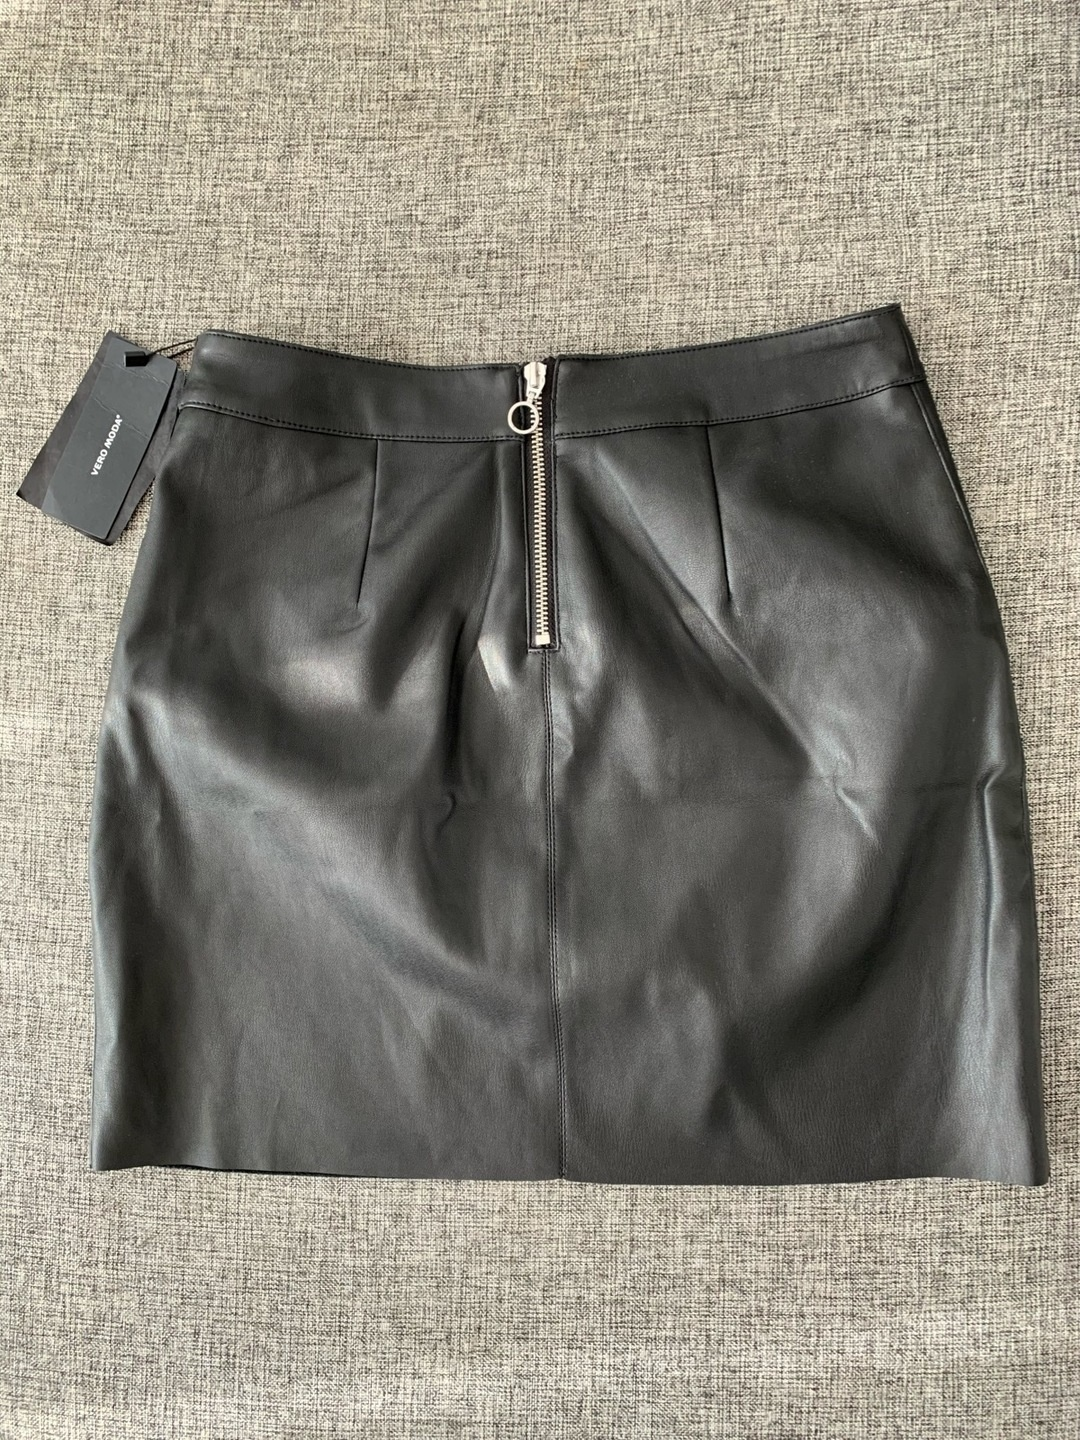 Women's skirts - VERO MODA photo 2